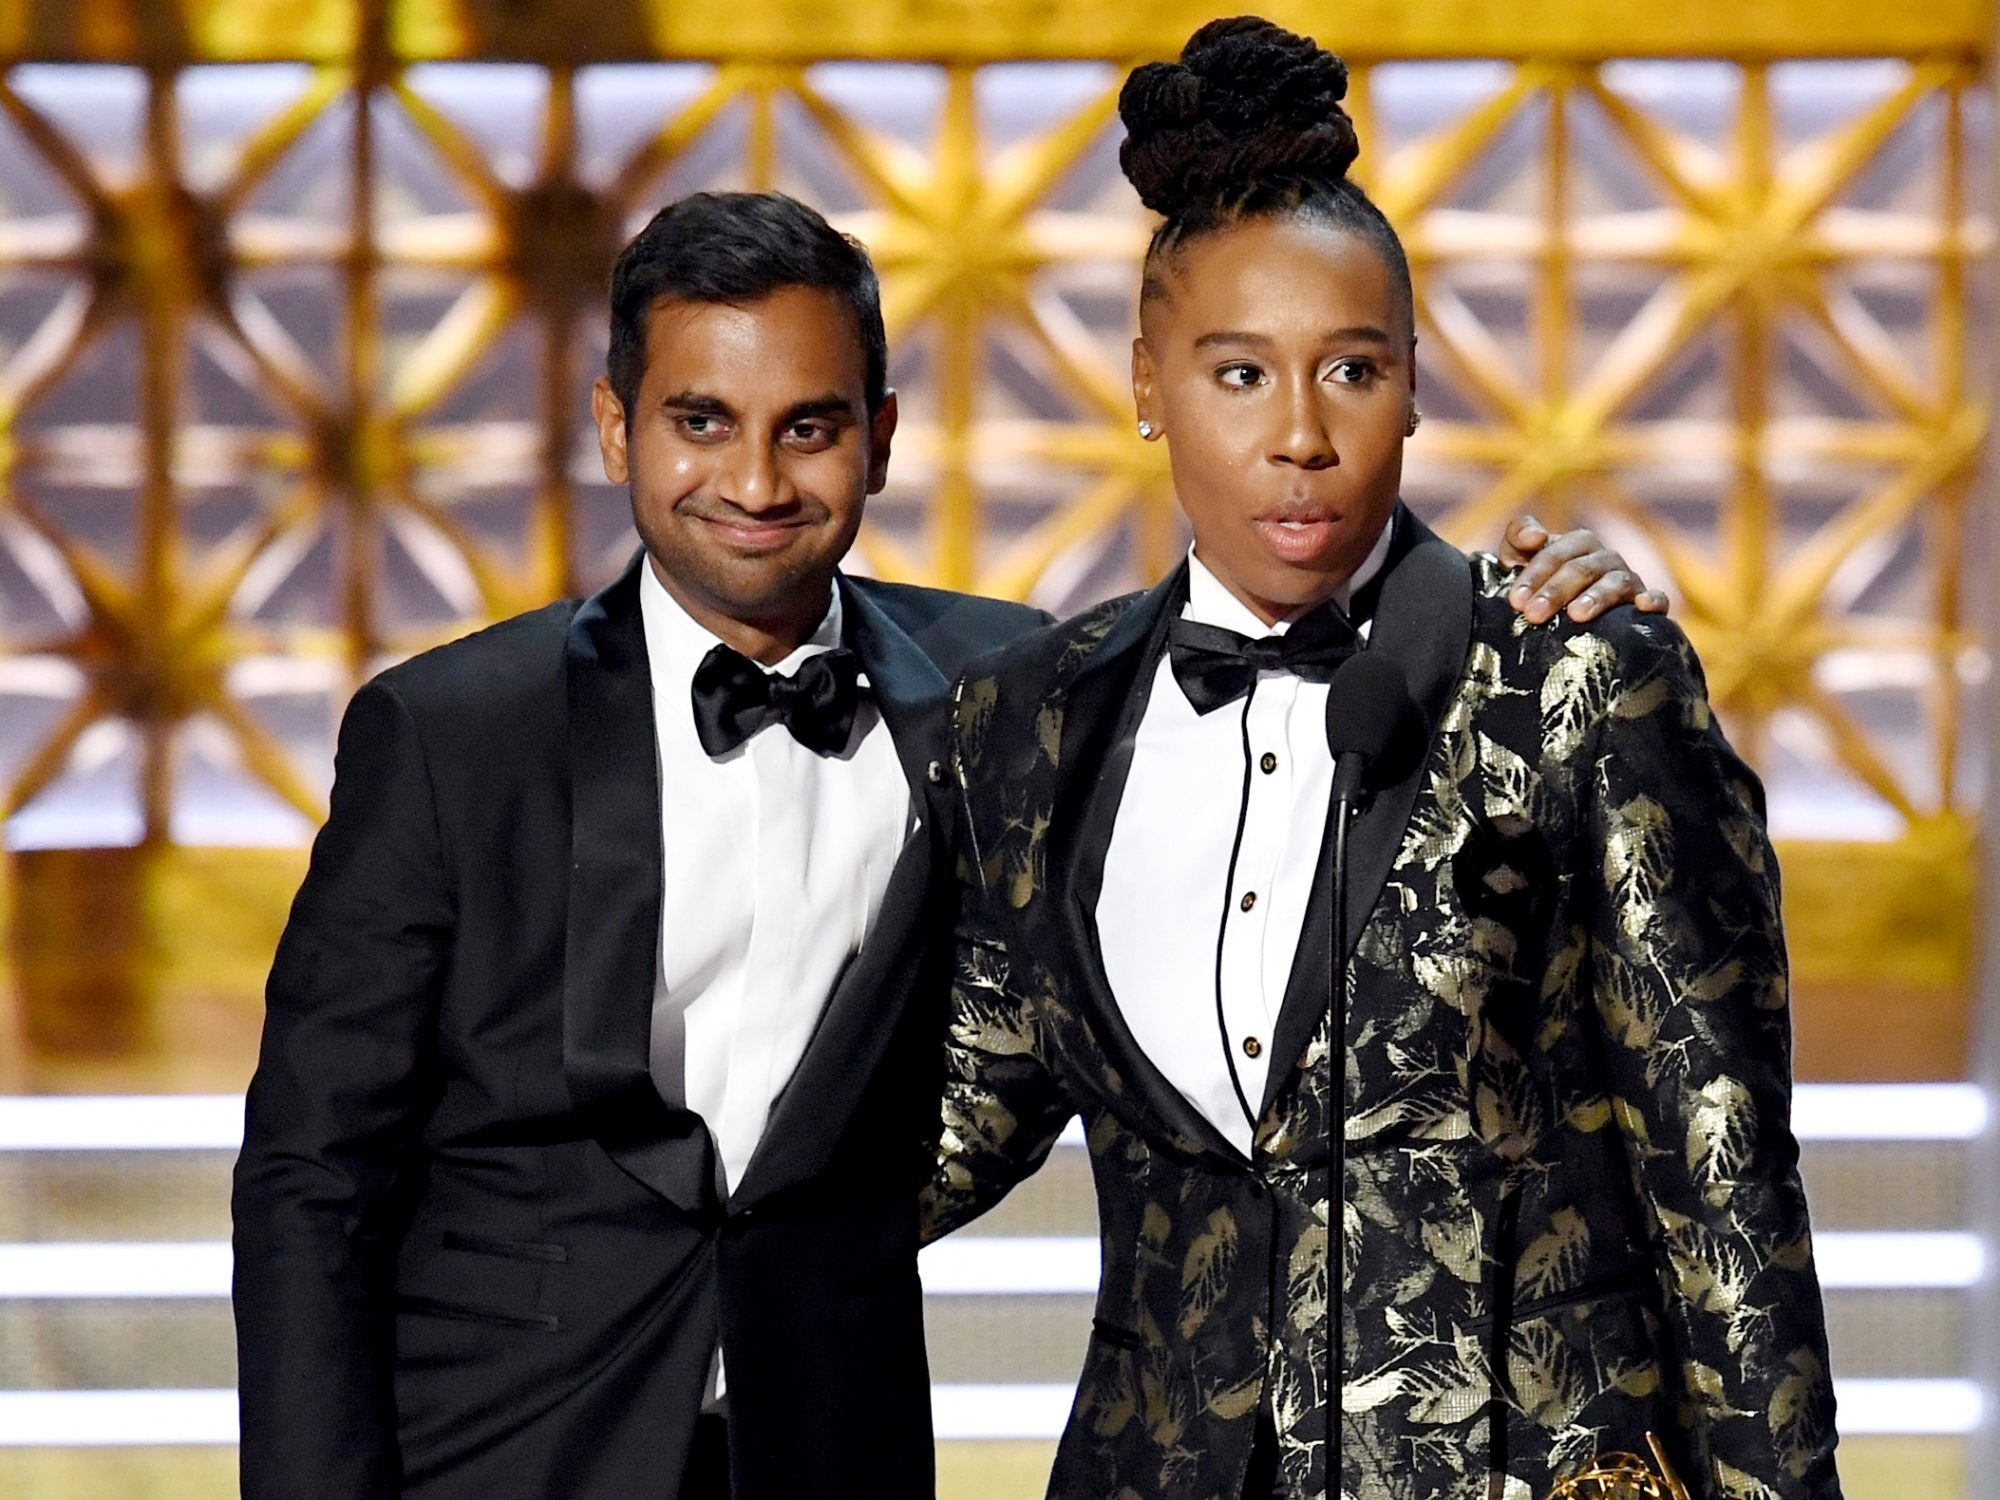 Lena Waithe Candidly Speaks About Co-Star Aziz Ansari's Sexual Misconduct Allegation